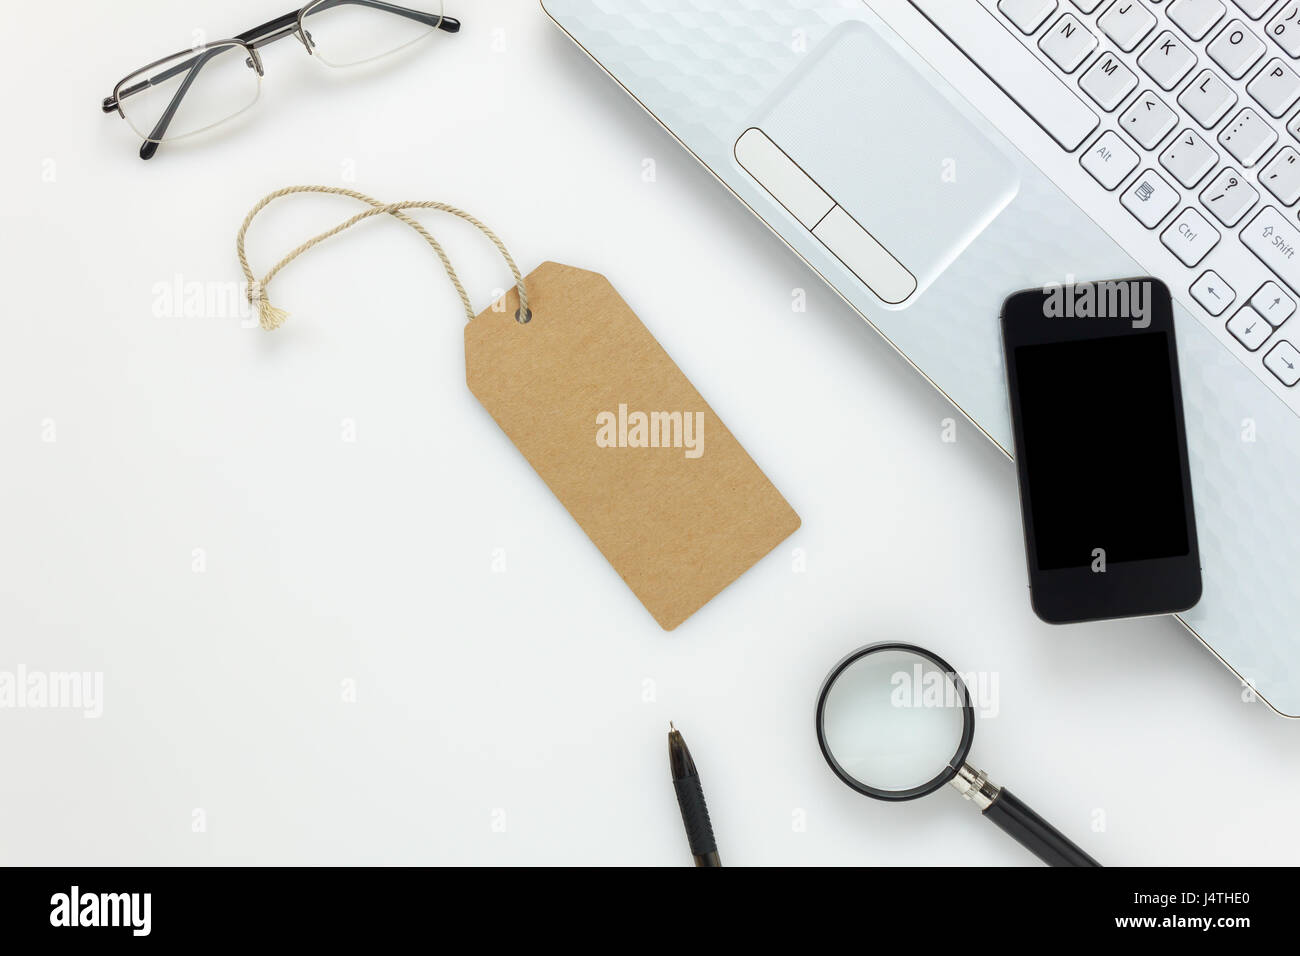 Top view accessories business office deskbile stock photo top view accessories business office deskbile phonelaptopgreeting cardeyeglassesmagnifier on white office desk with copy space kristyandbryce Gallery